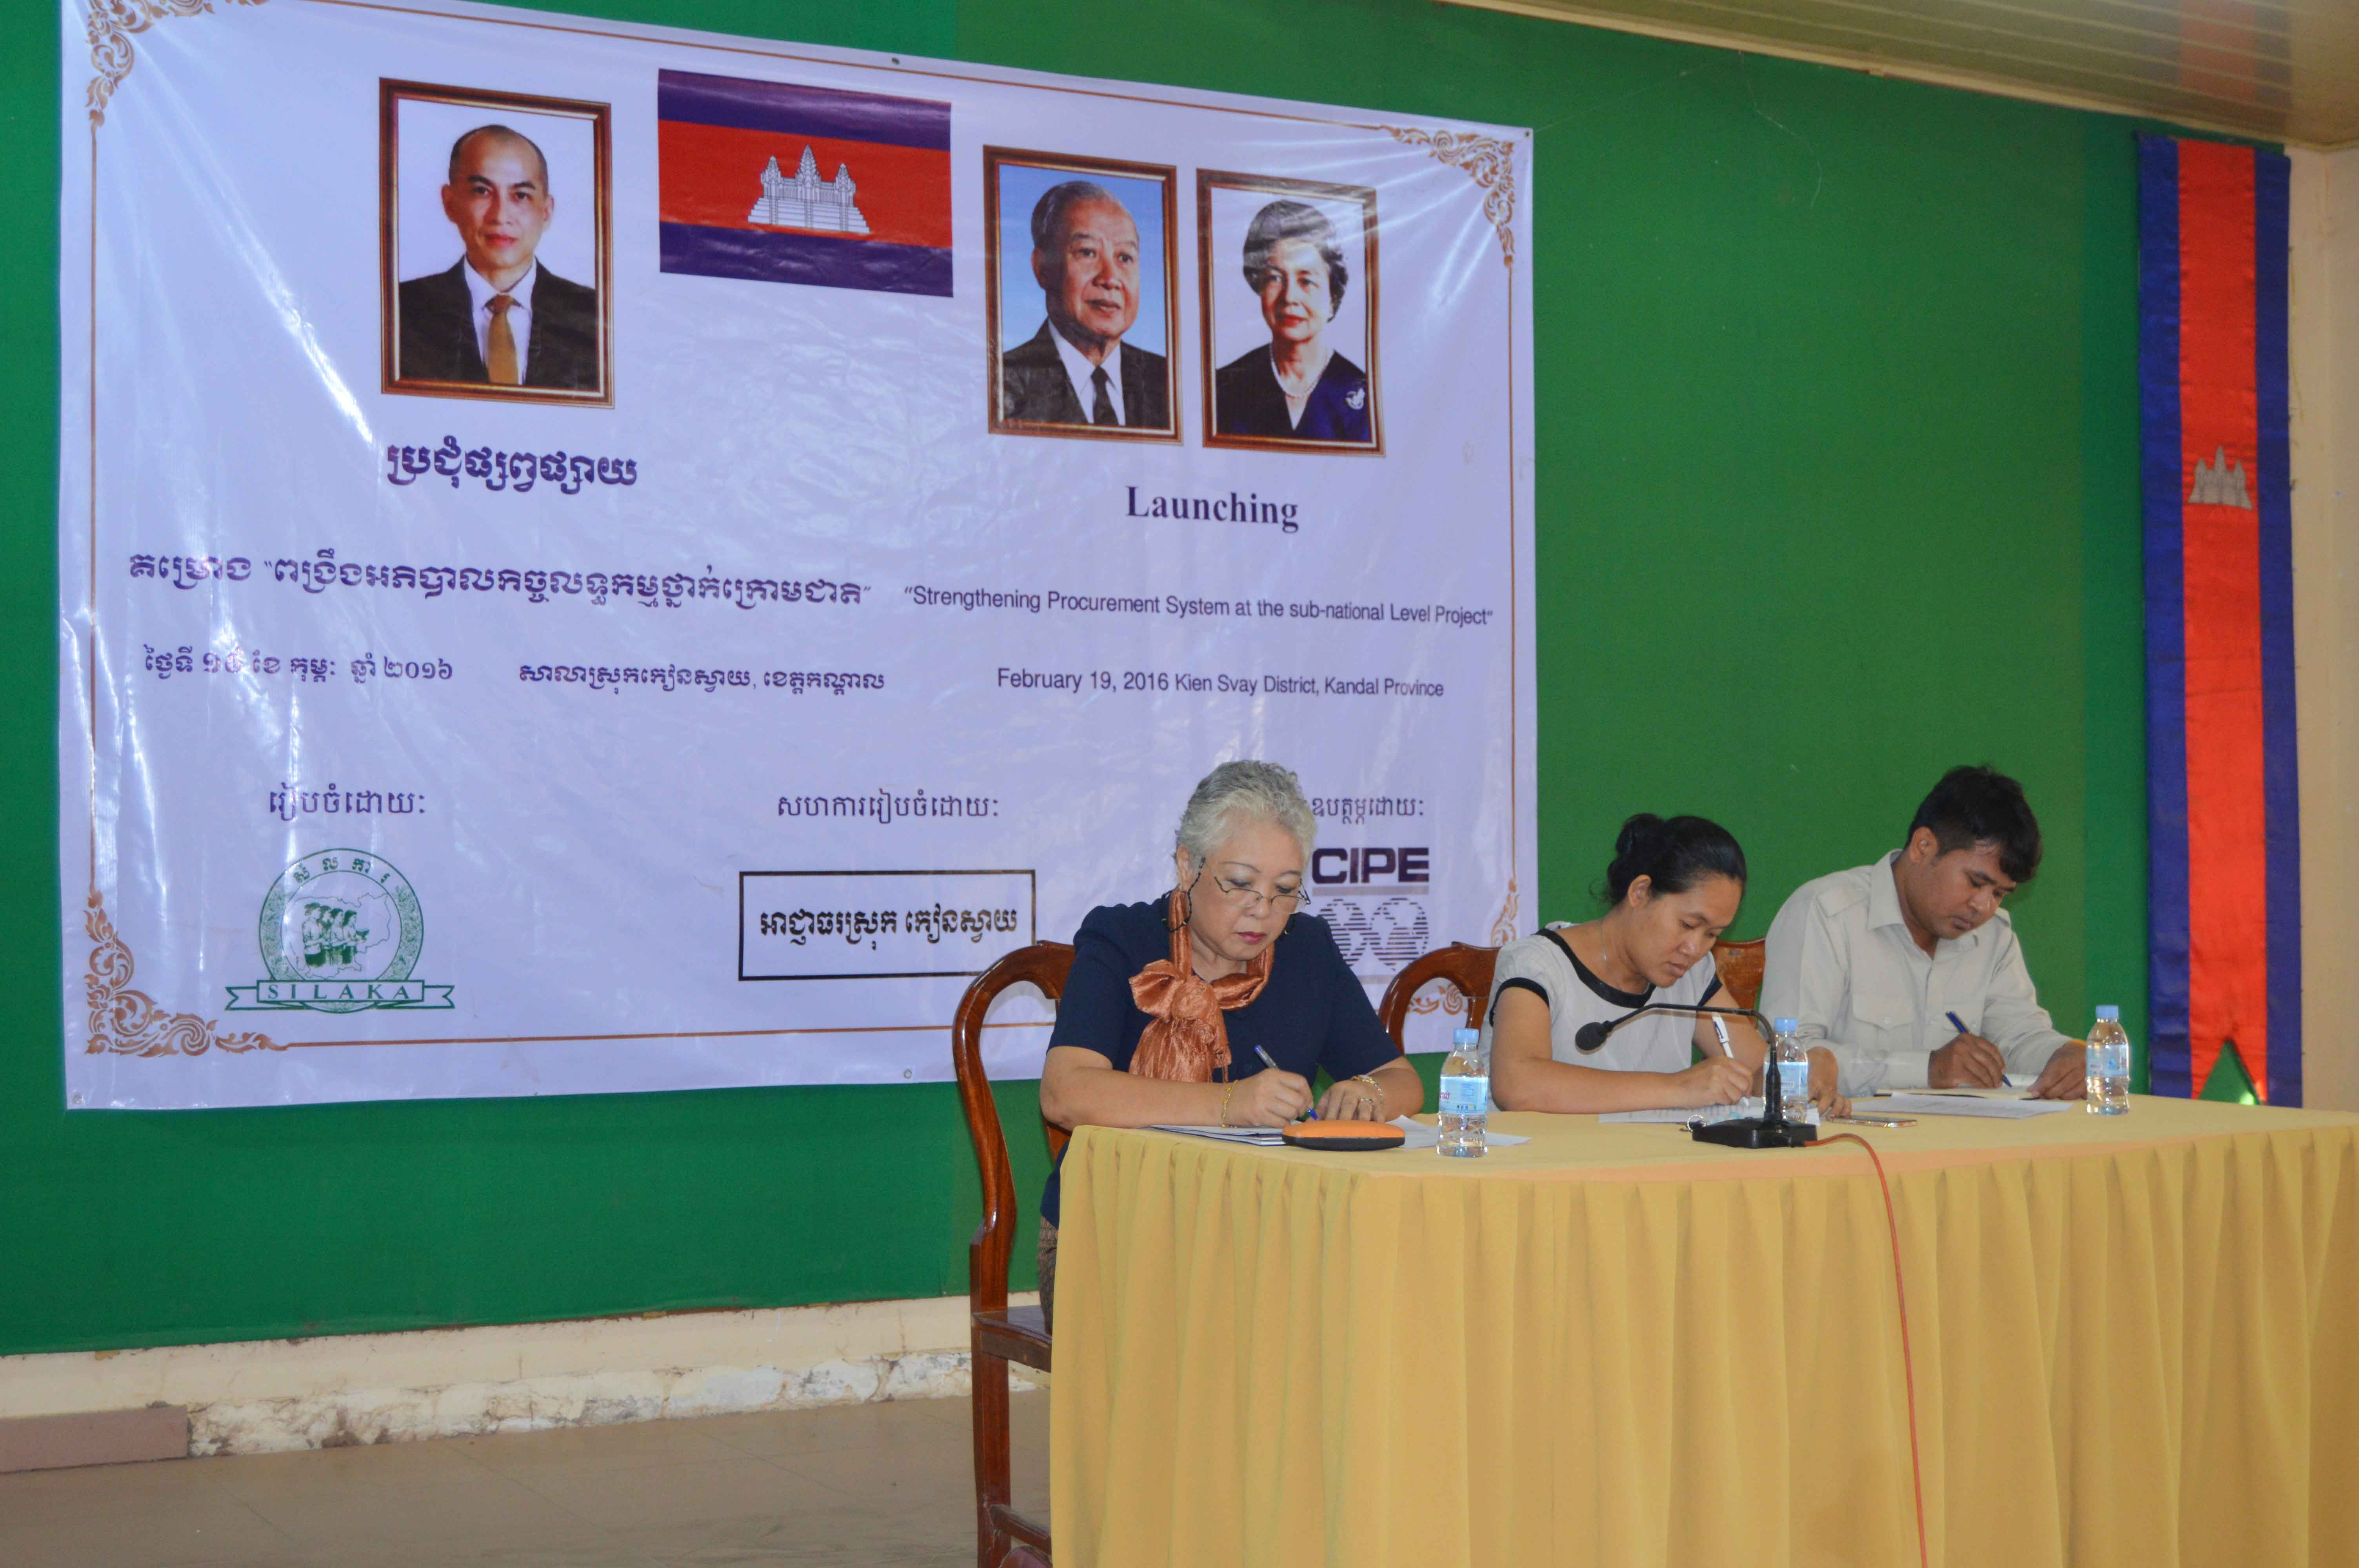 SPSL project launching in Kean Svay district